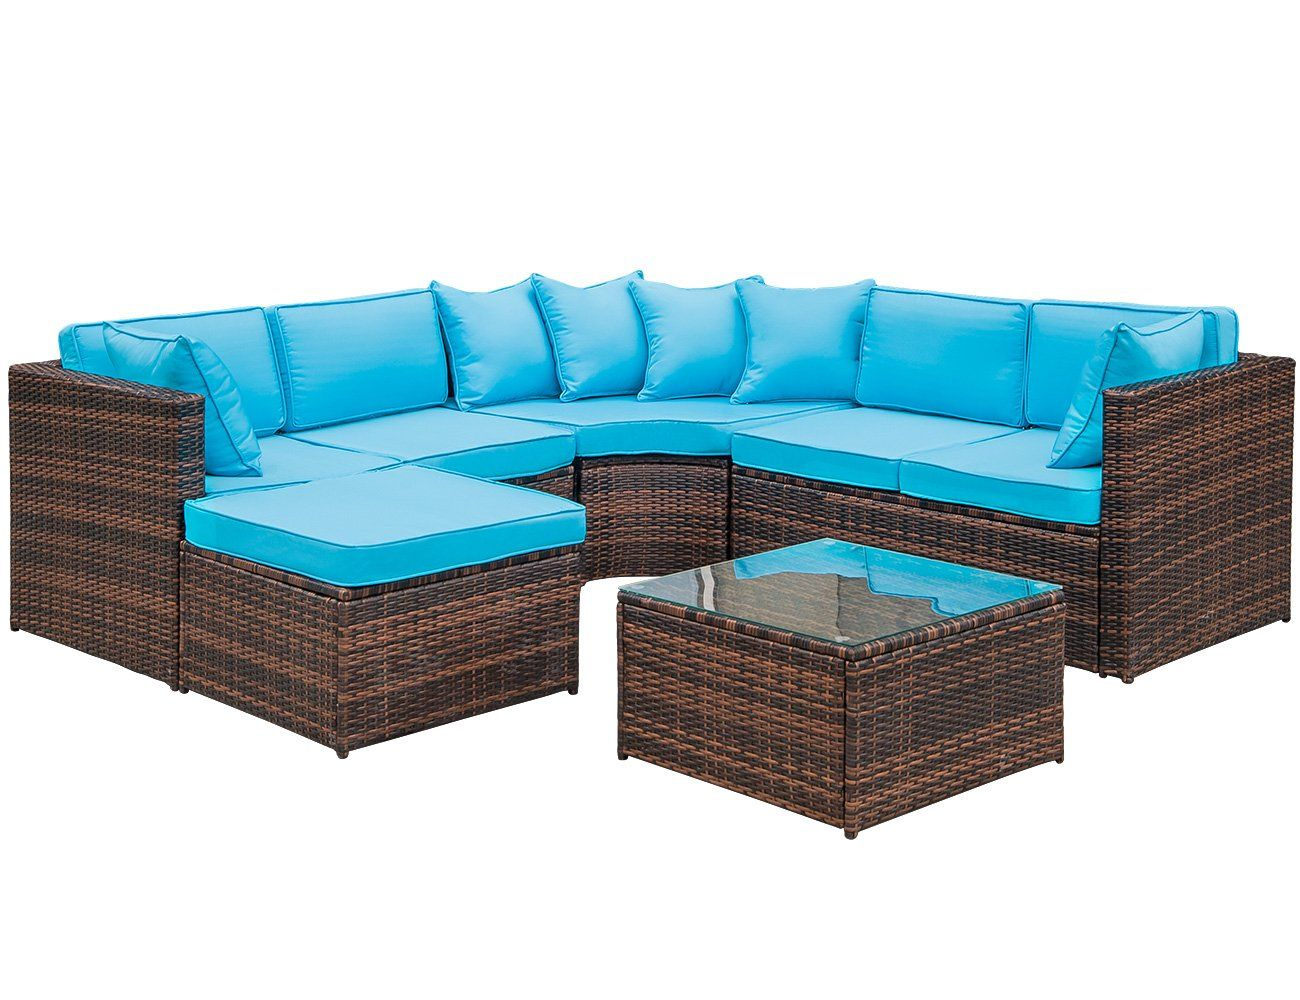 Lz Leisure Zone 7 Piece Patio Furniture Set Outdoor Wicker Sofa